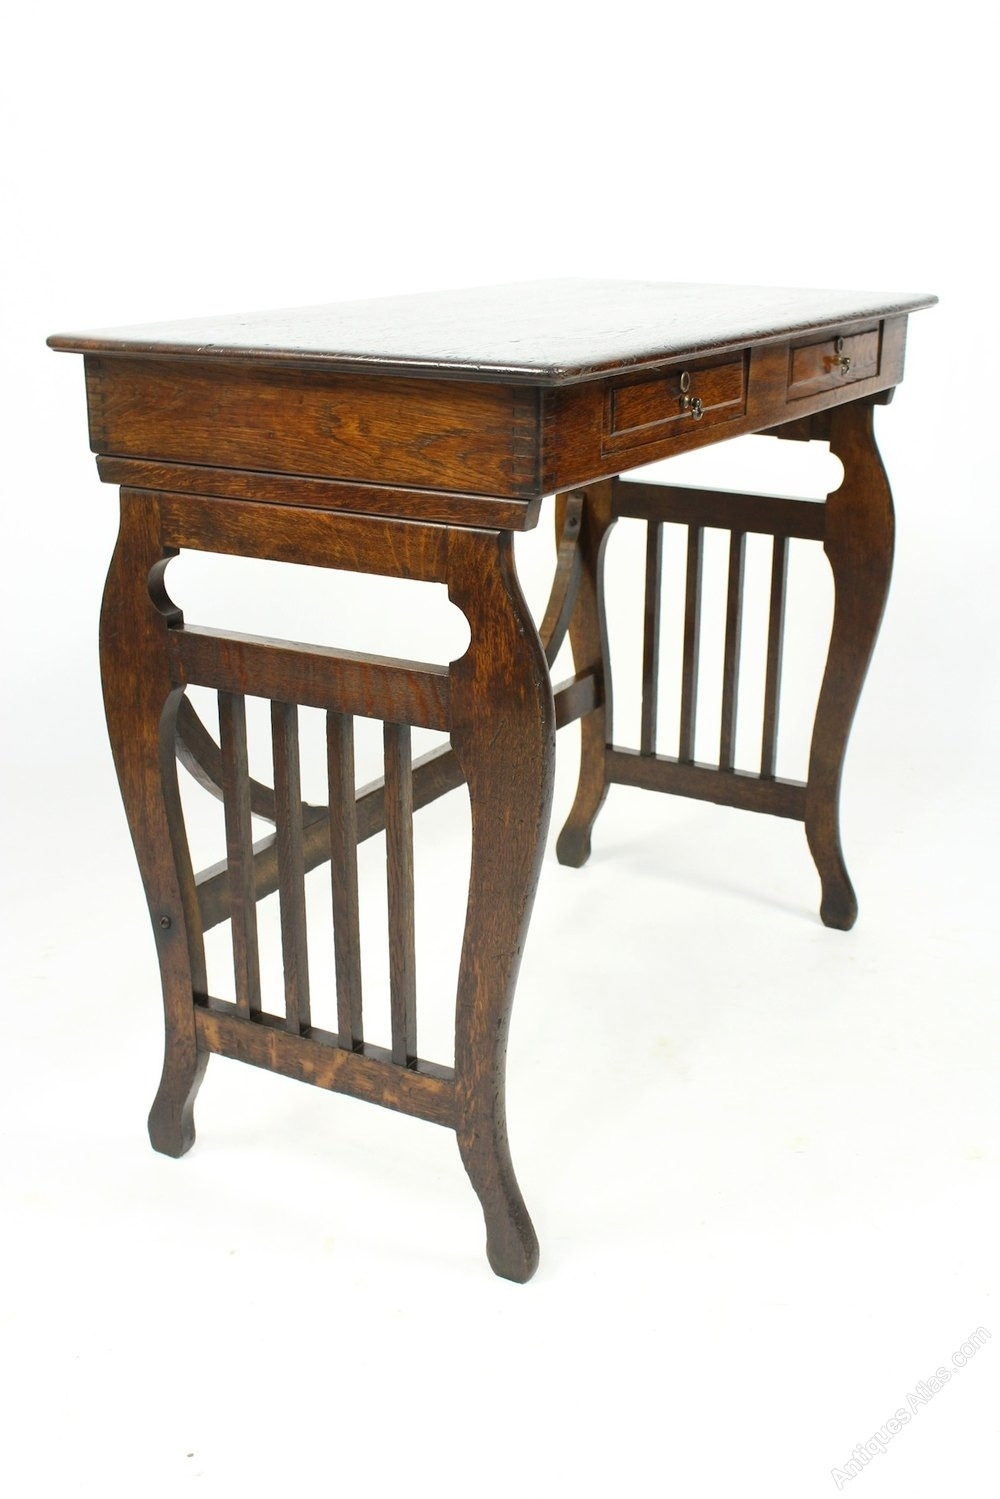 Antique Oak Lyre End Table With Drawers - Antiques Atlas intended for Lyre Coffee Tables (Image 5 of 30)